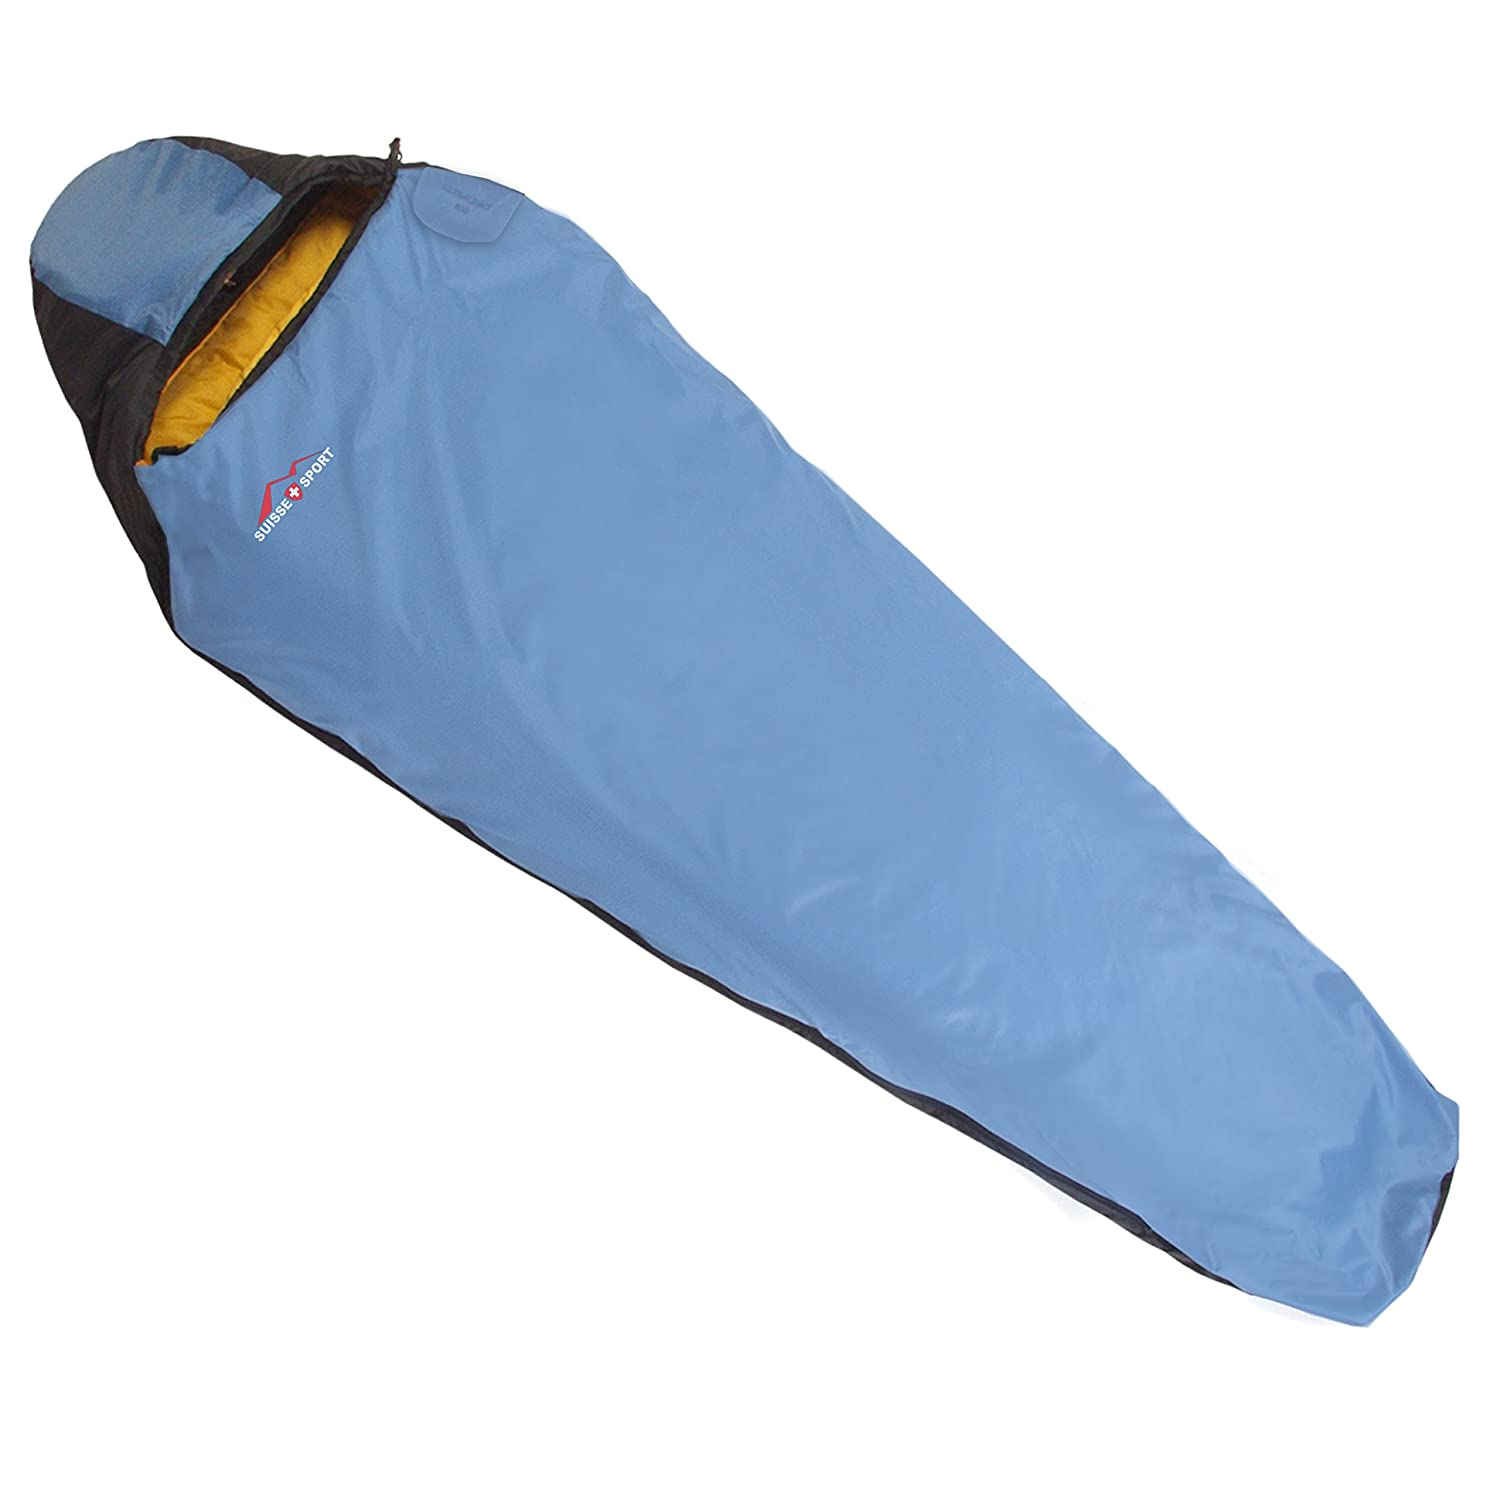 Suisse Sport Adventurer Mummy Ultra-Compactable Sleeping Bag Review